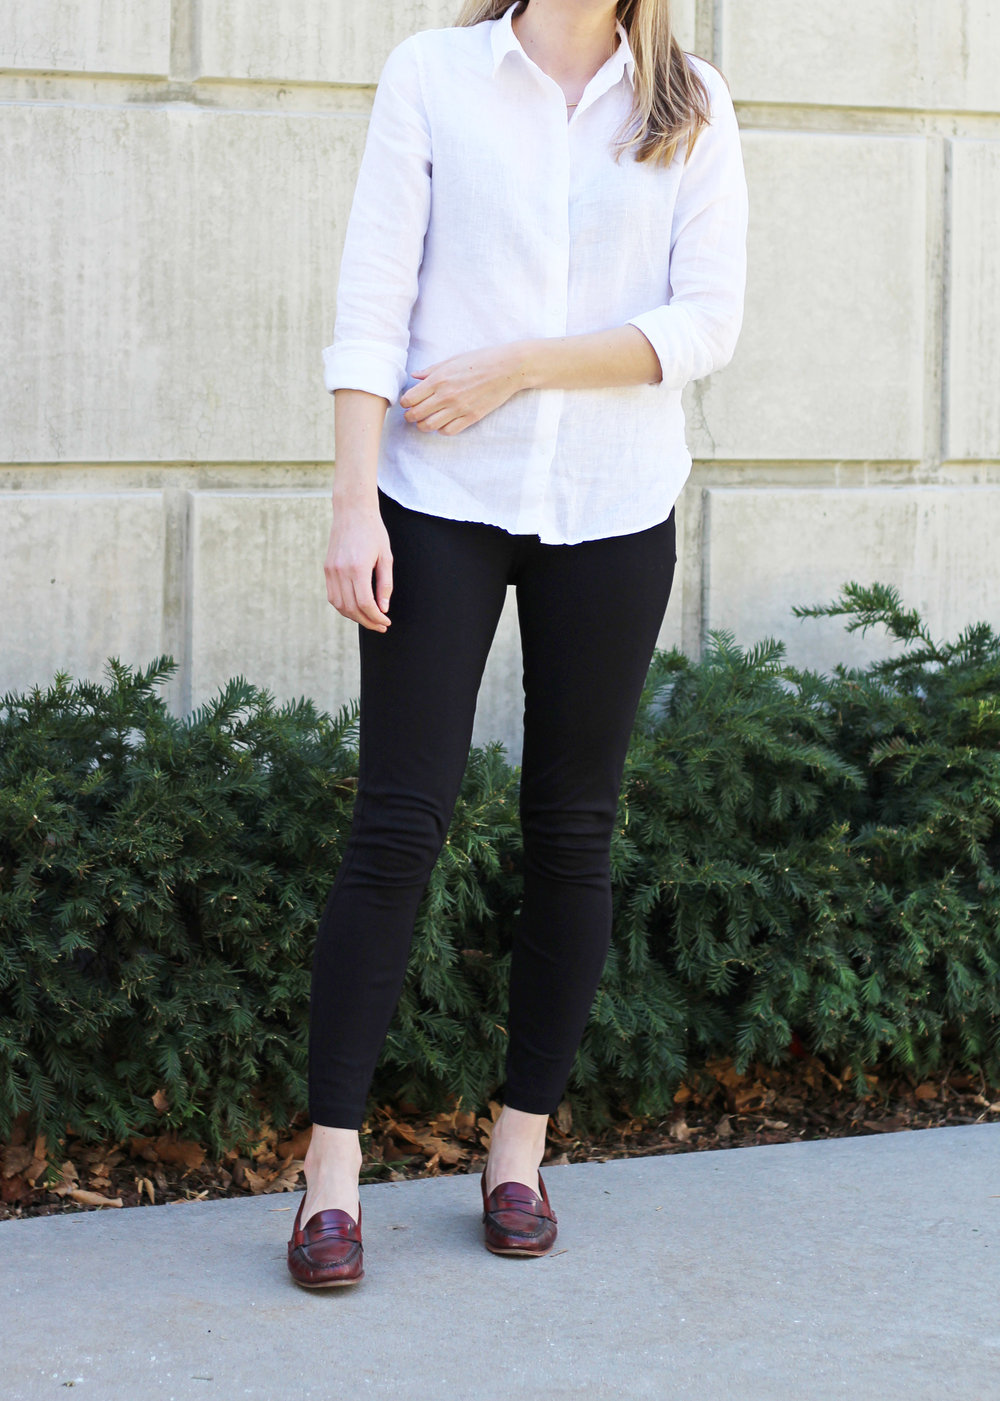 White linen shirt outfit with black pants and red loafers — Cotton Cashmere Cat Hair